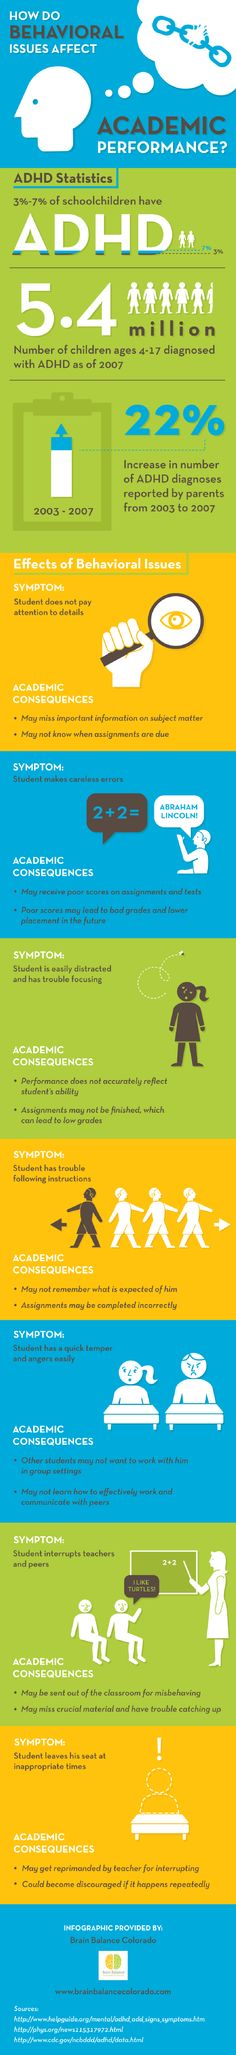 How Do Behavioral Issues Affect Academic Performance [INFOGRAPHIC] #academic#performance